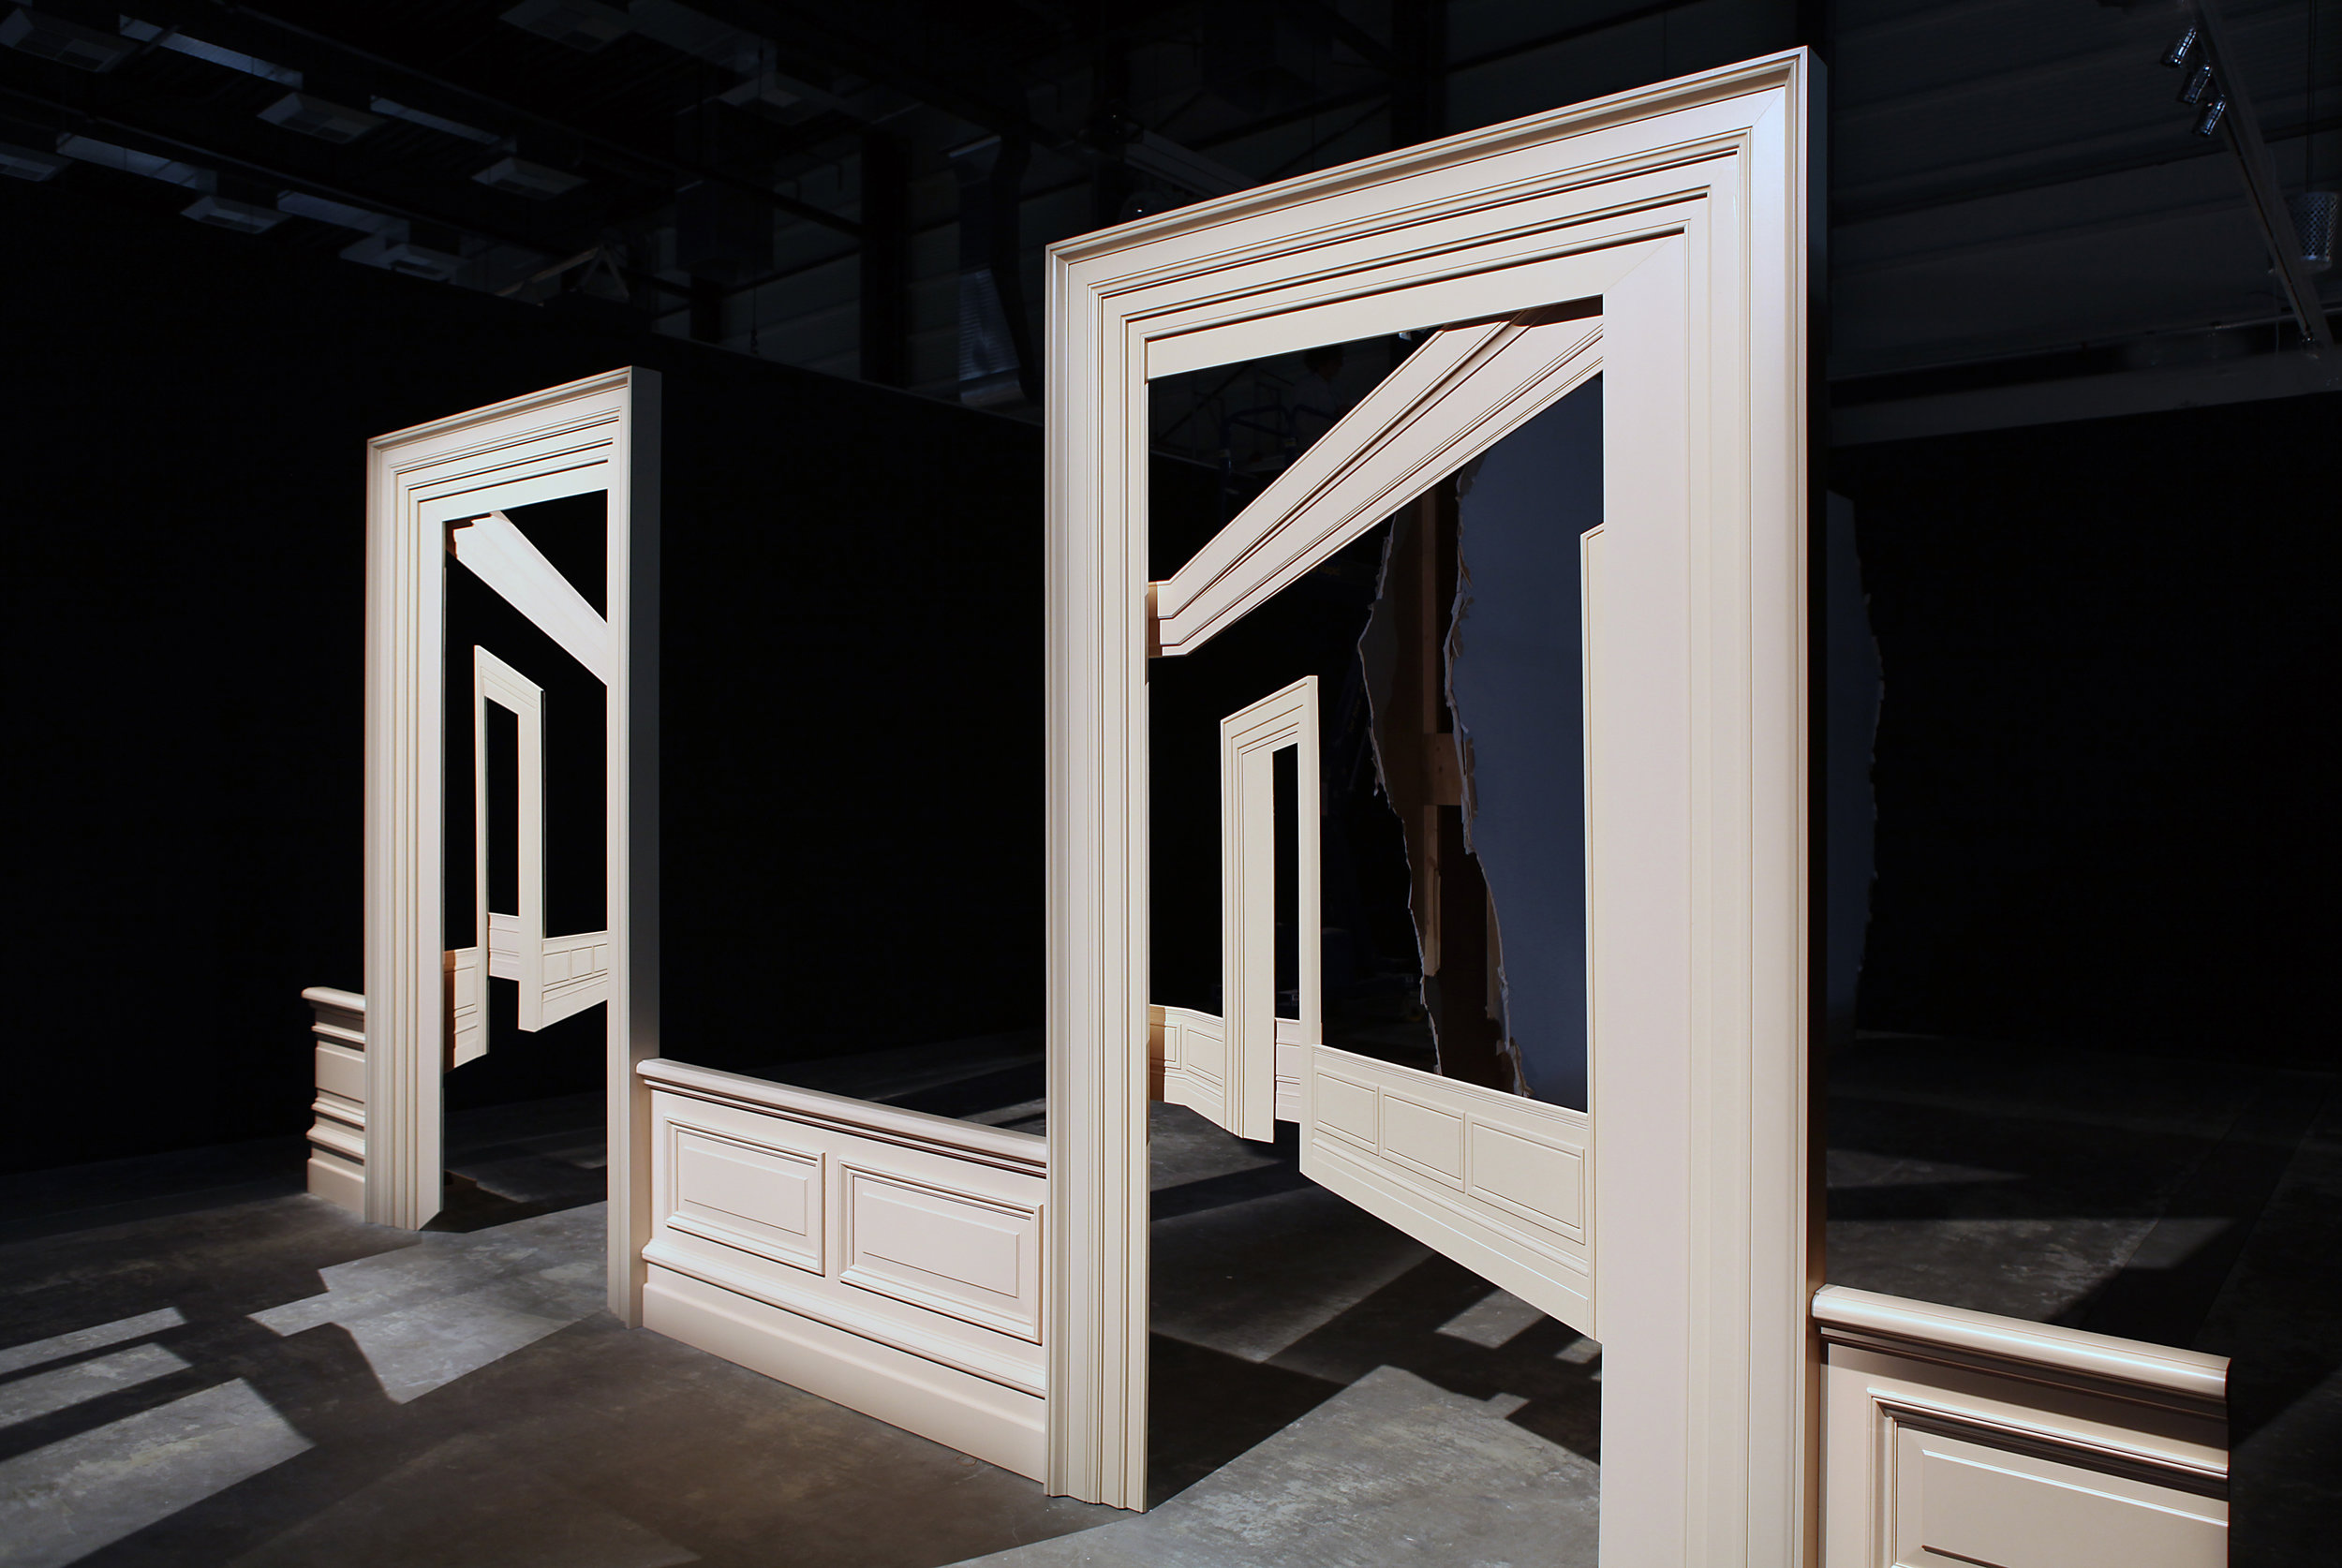 SCRATCHINGS ON ACCEPTED TRUTHS: THE WORK OF WALID RAAD